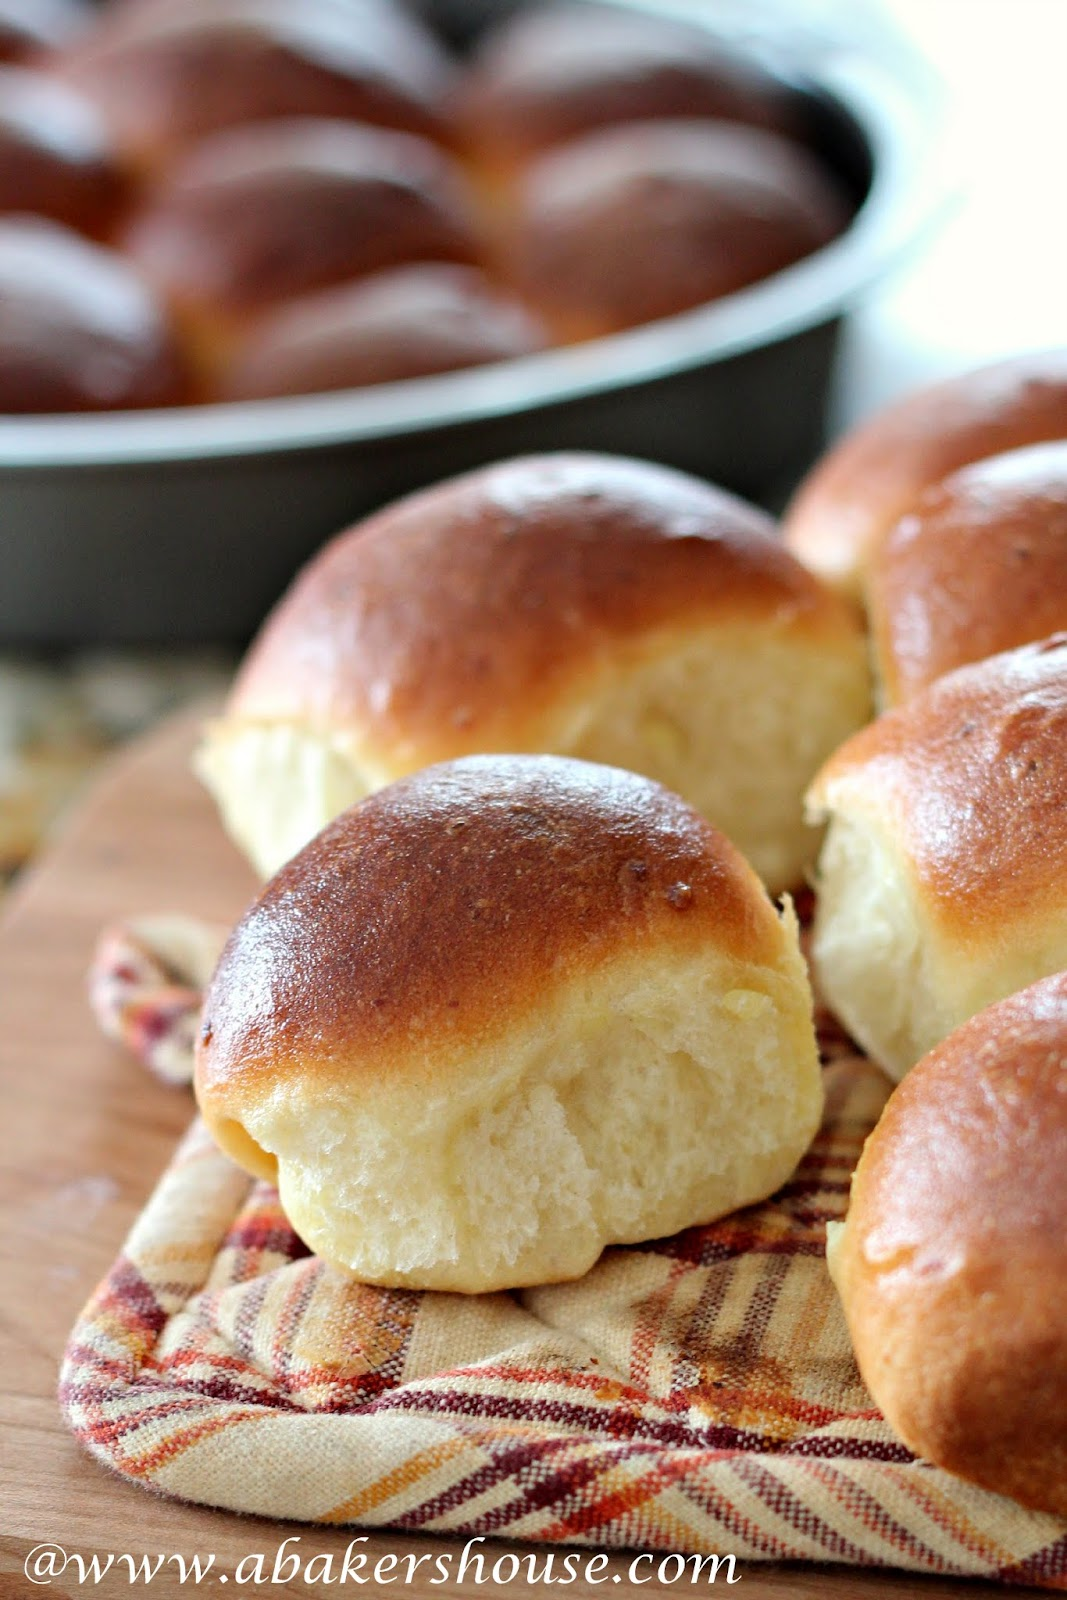 Potato Roll from www.abakershouse.com